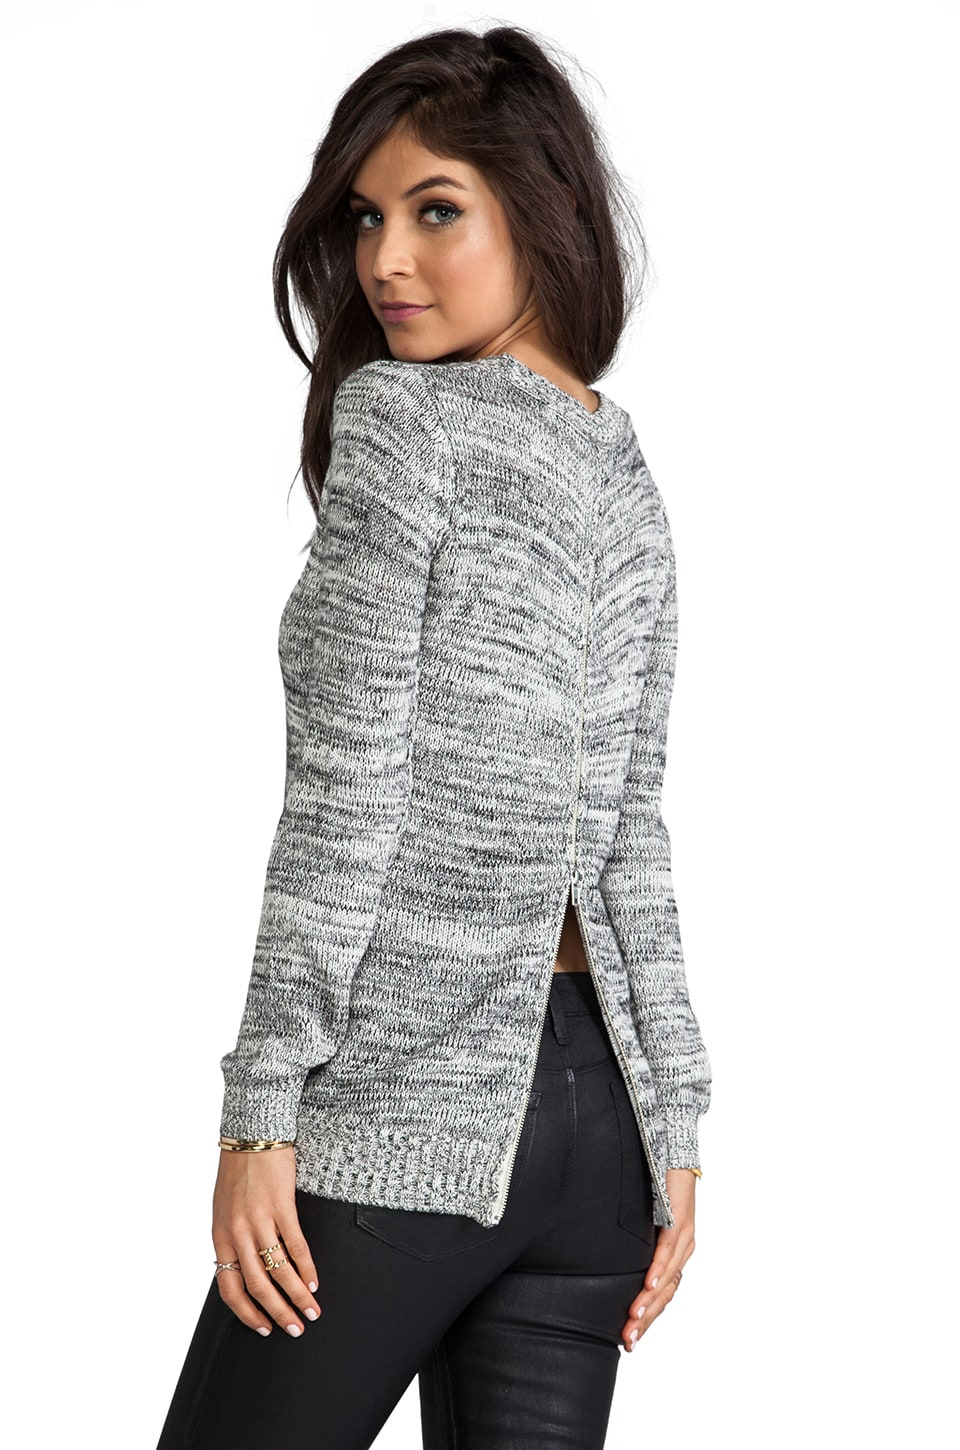 Central Park West Glenrock Cropped Pullover in White